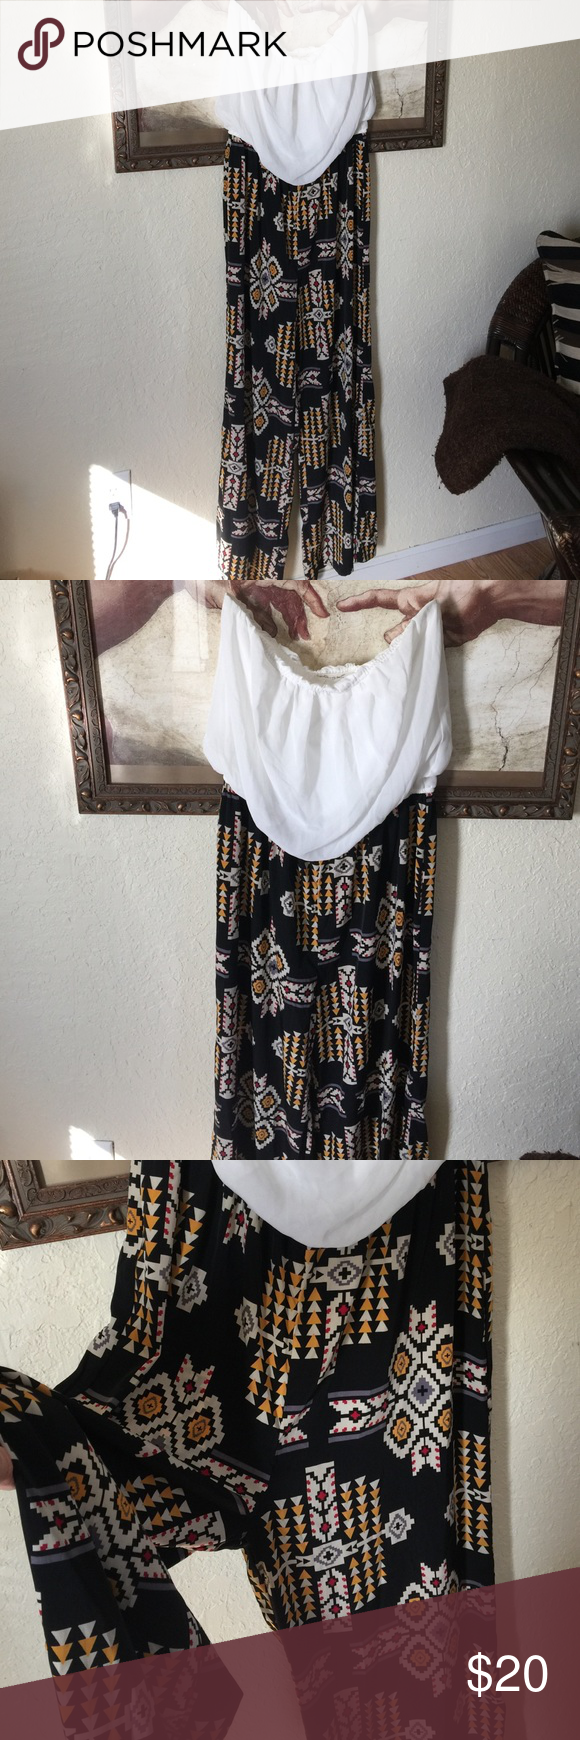 Flowing strapless jumpsuit NWOT stunning outfit. Bought for special occasion and never wore. Wrinkle free wide leg bottom. Elastic waist attached to lined white top. Make it yours with a beautiful large statement neck piece. Size L - 12/14 Liberty love Pants Jumpsuits & Rompers